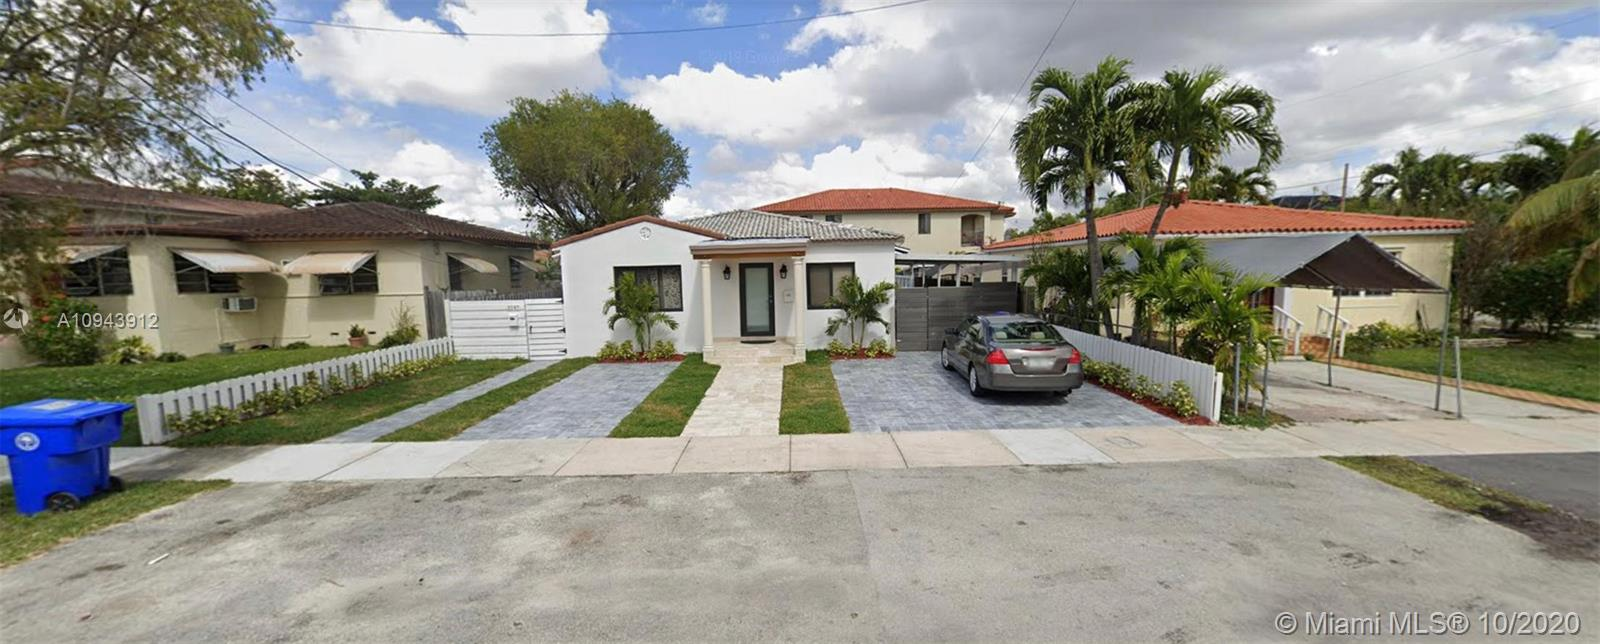 3187 SW 27 ST #3187 For Sale A10943912, FL